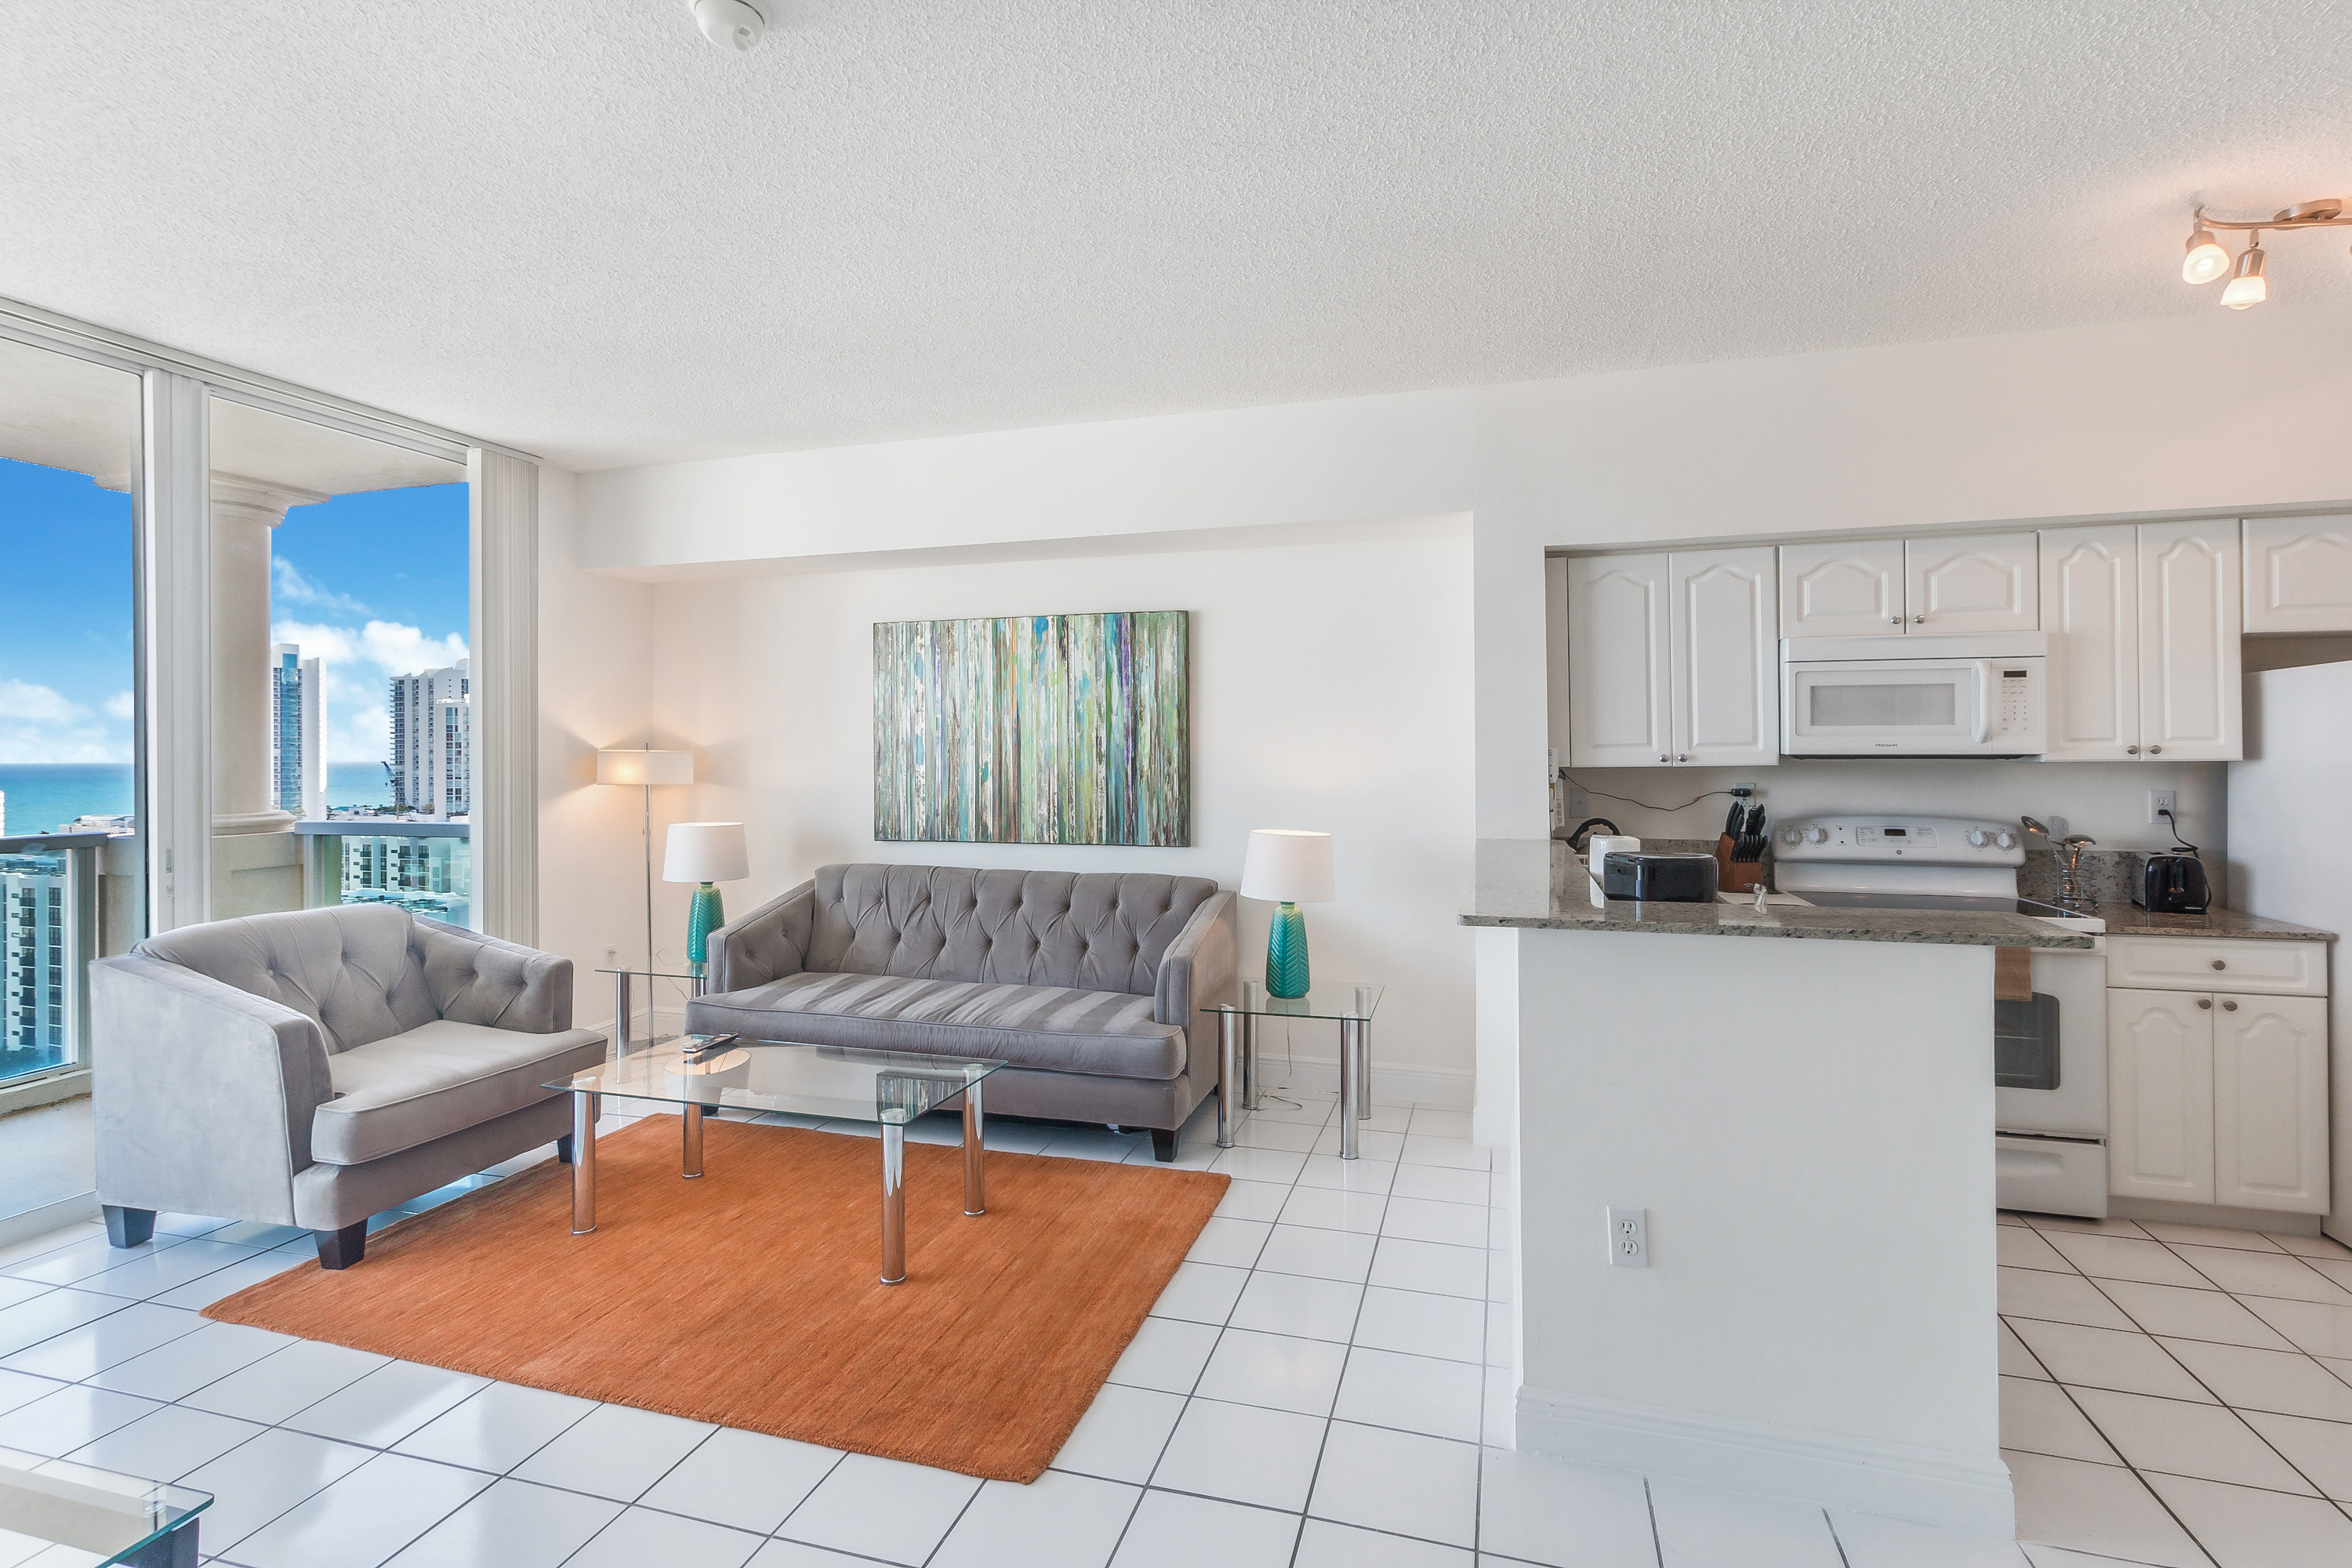 image 5 furnished 1 bedroom Apartment for rent in North Miami Beach, Miami Area